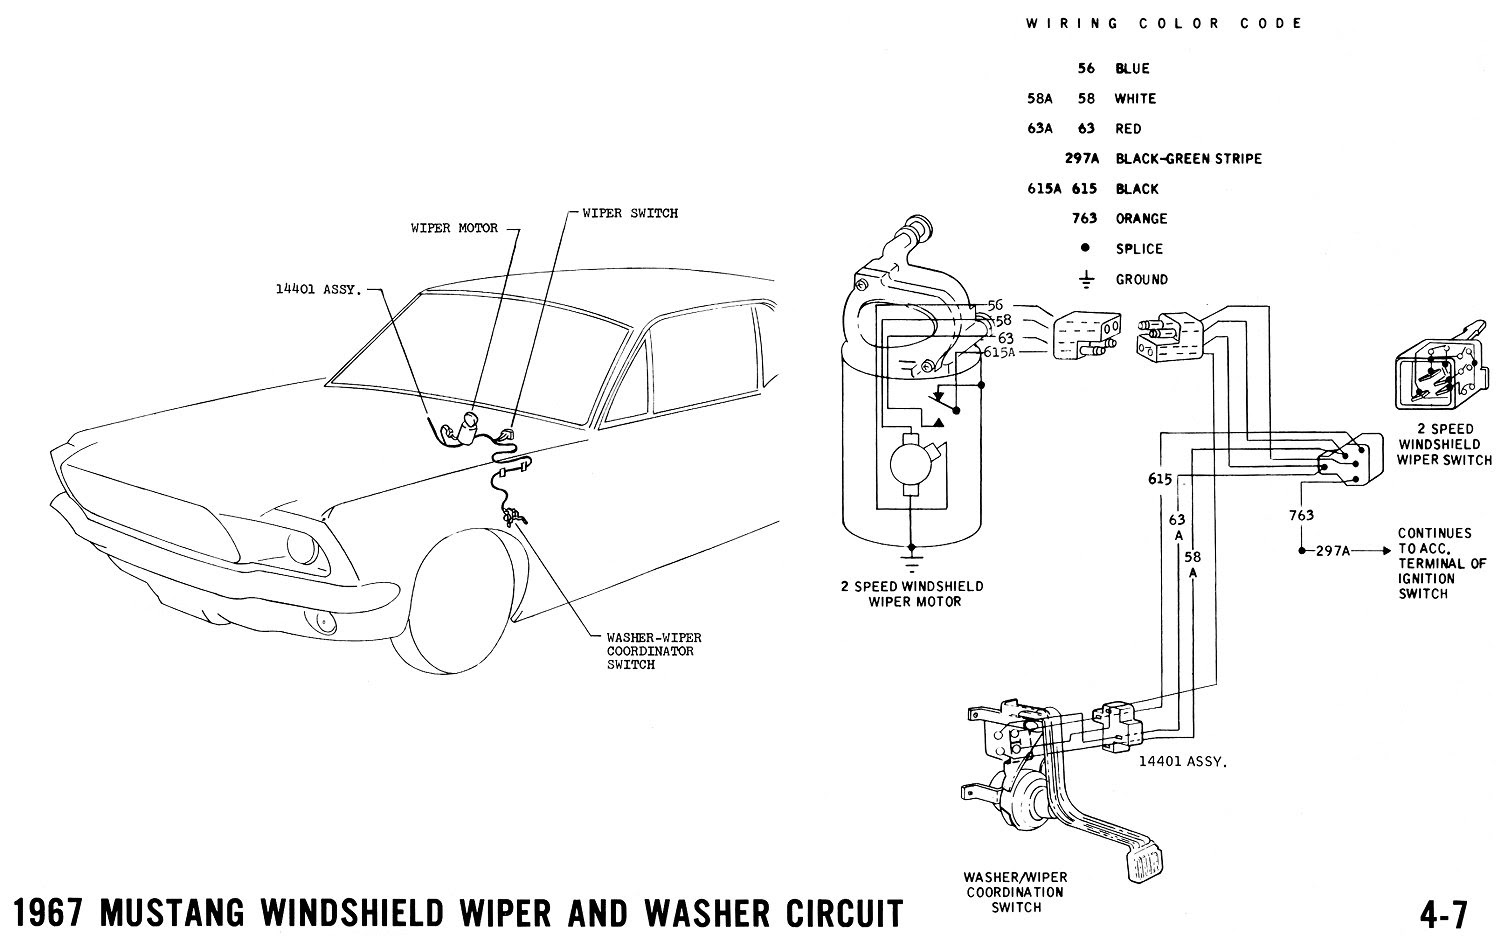 1966 Mustang Windshield Wiper Wiring Diagram Wiring Diagram Dedicated Dedicated Pasticceriagele It